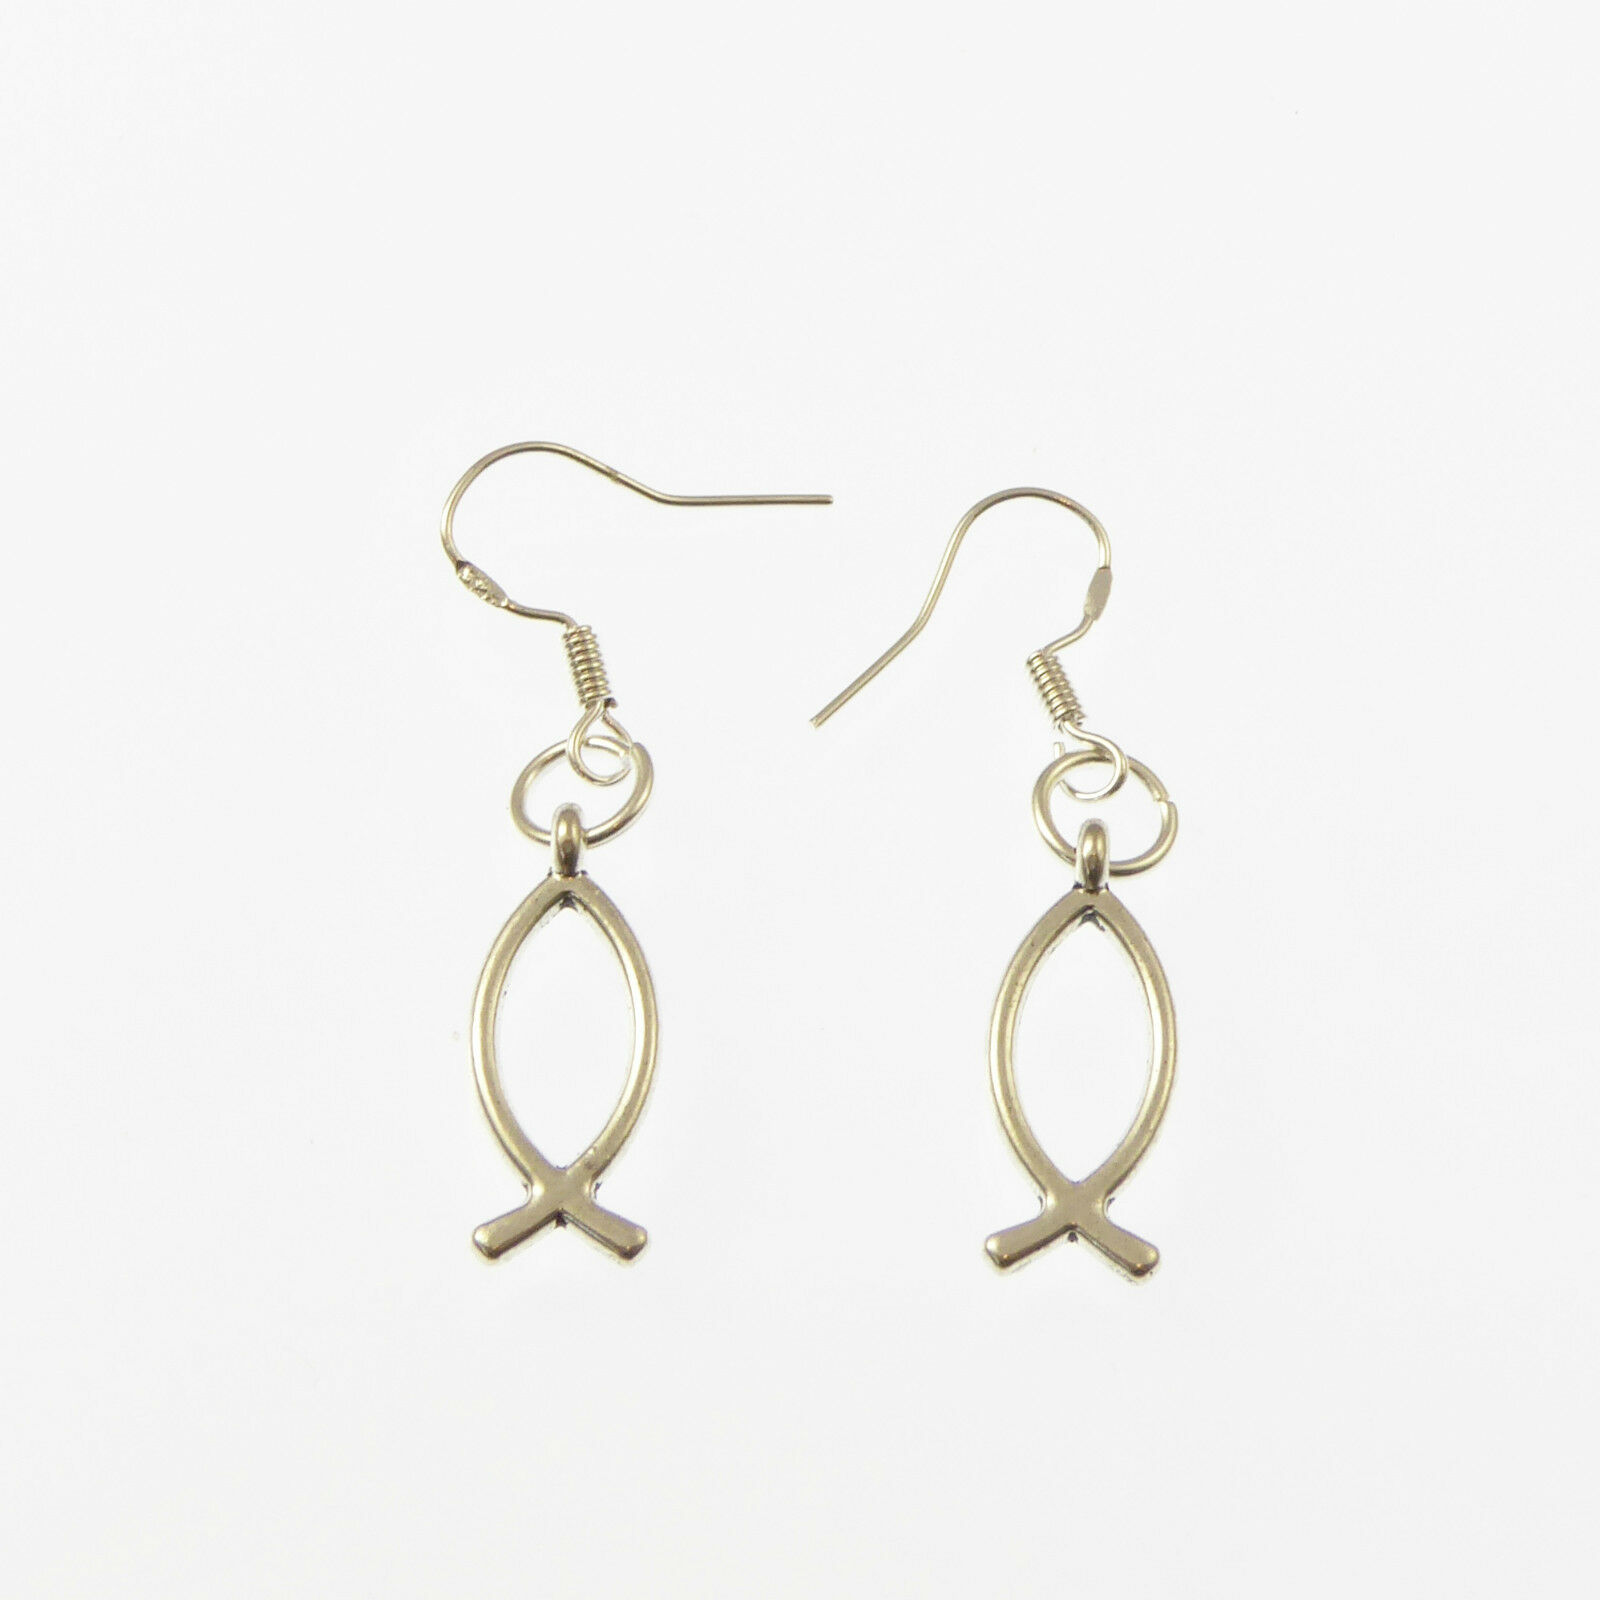 Christian jesus ichthus fish symbol dangly earrings sterling picture 1 of 1 biocorpaavc Choice Image